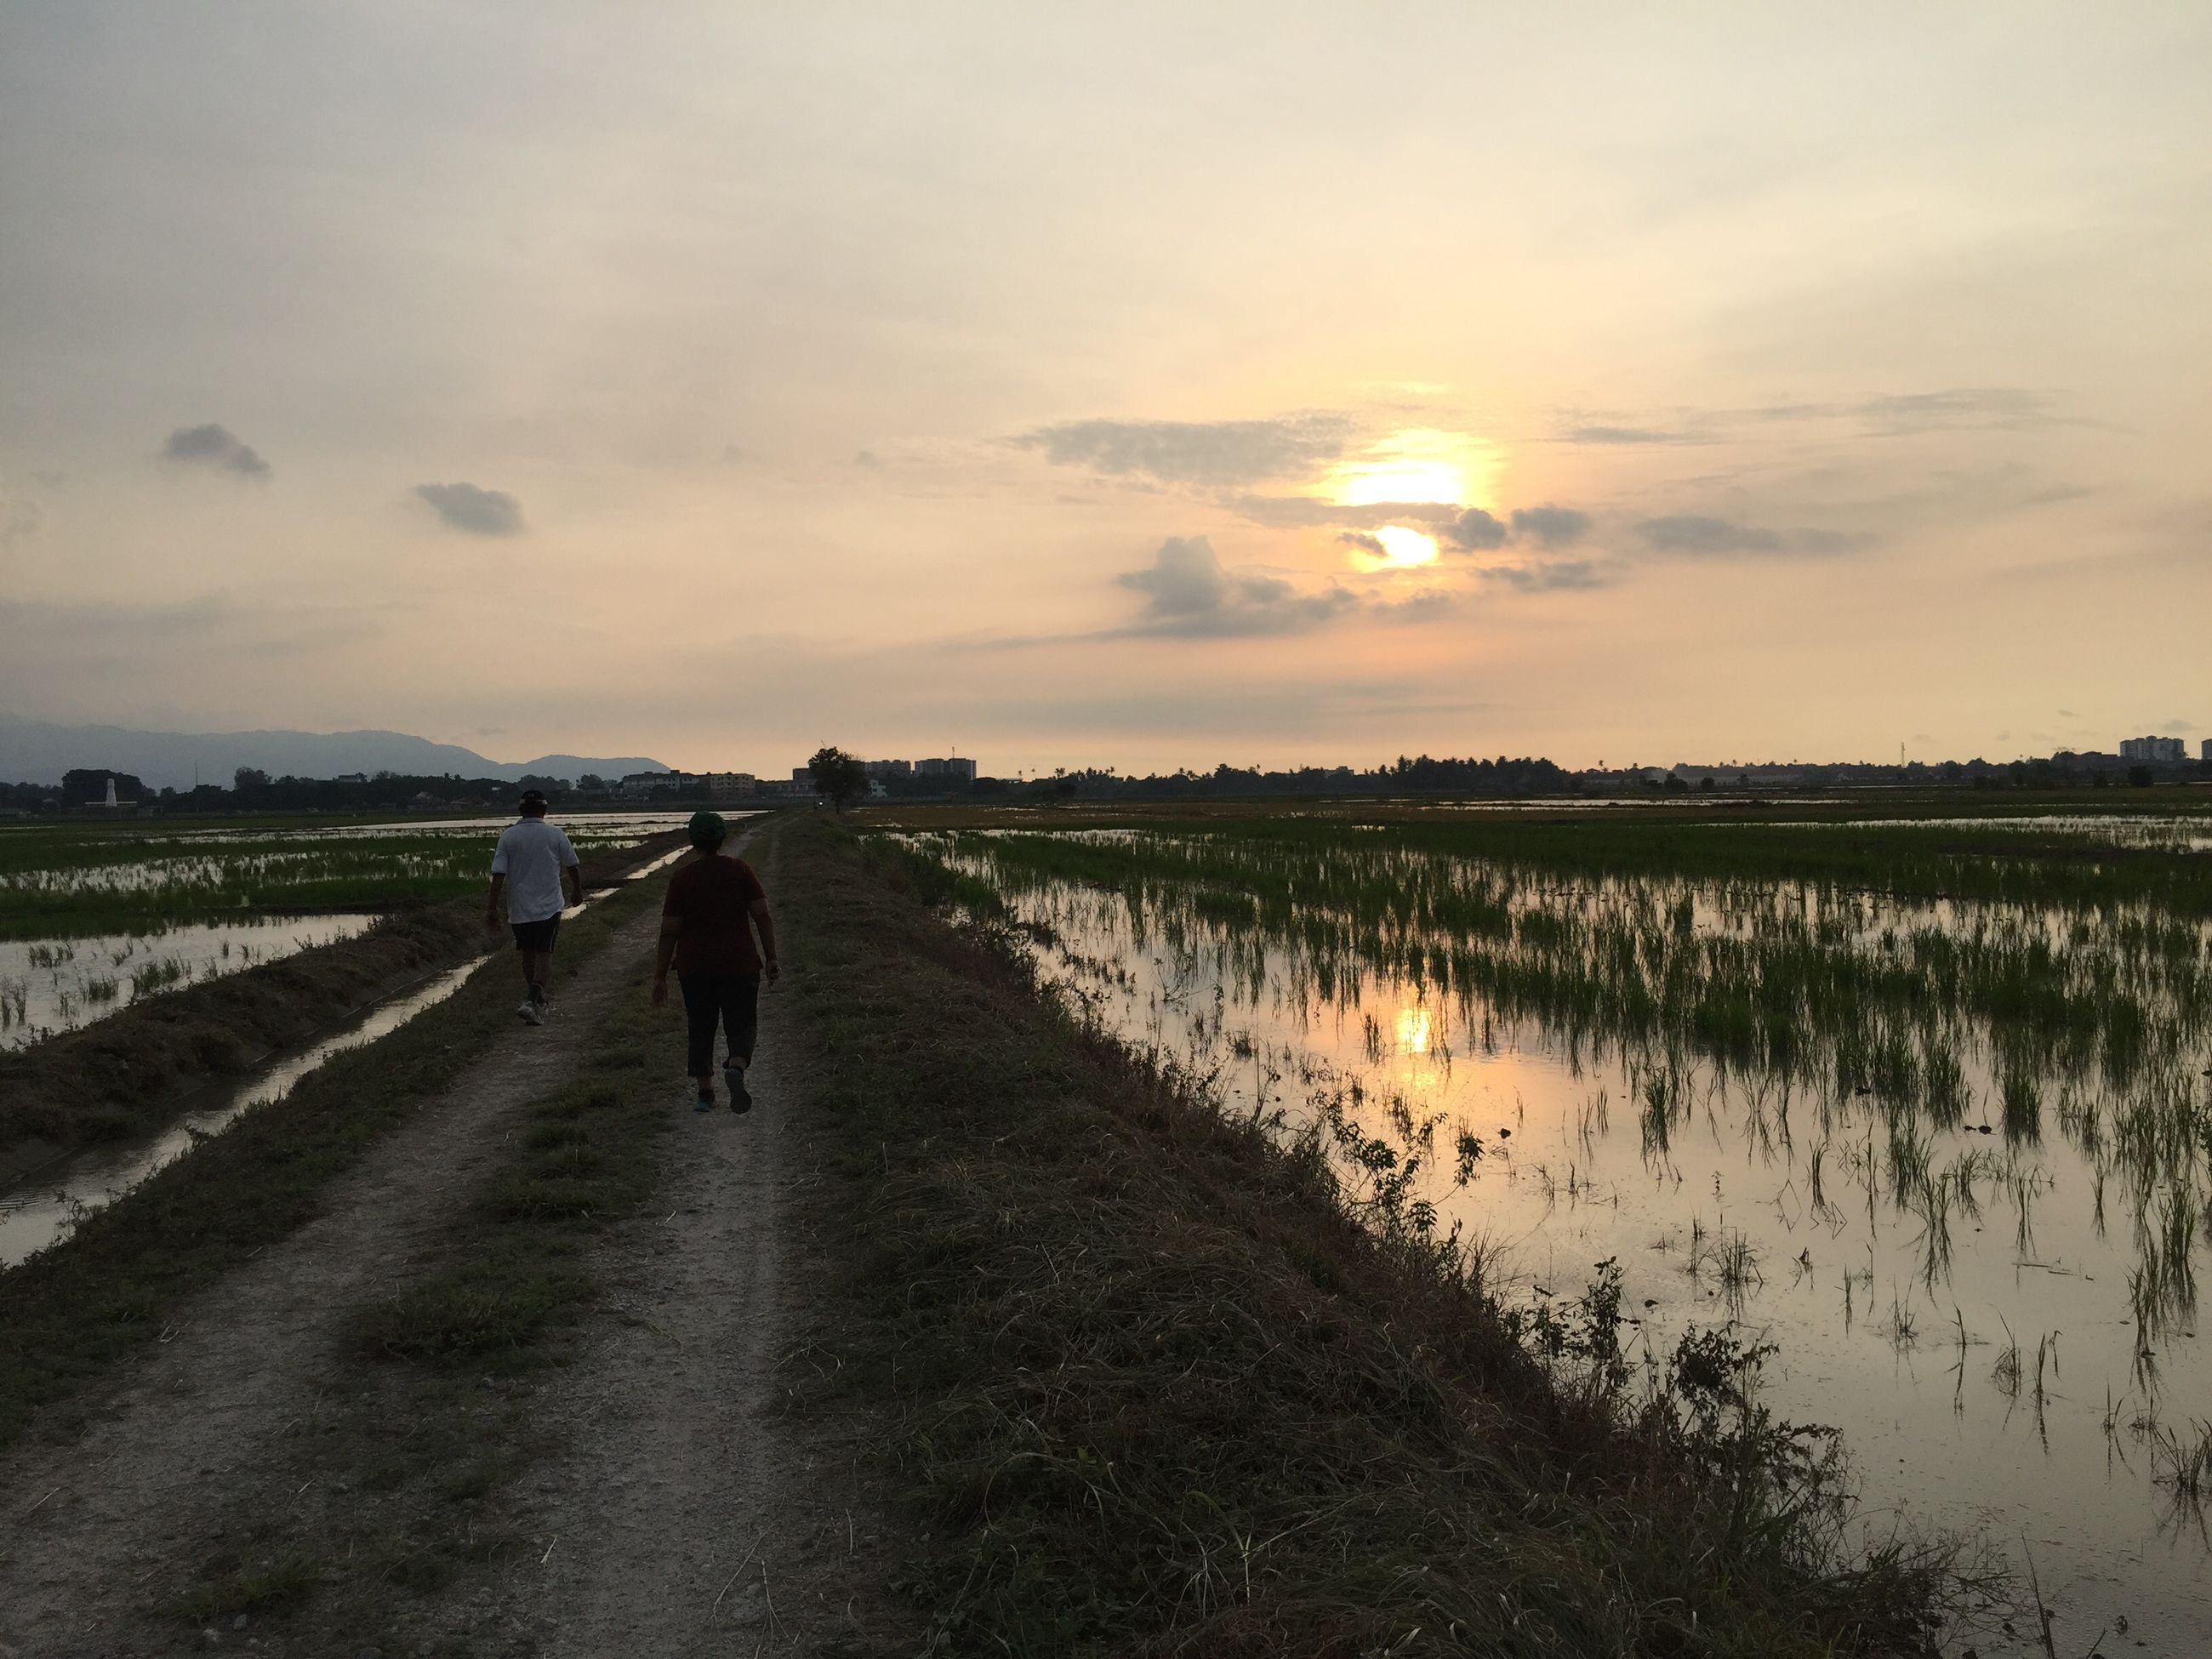 sky, walking, field, full length, the way forward, lifestyles, rear view, sunset, grass, leisure activity, cloud - sky, men, tranquility, tranquil scene, landscape, dirt road, nature, scenics